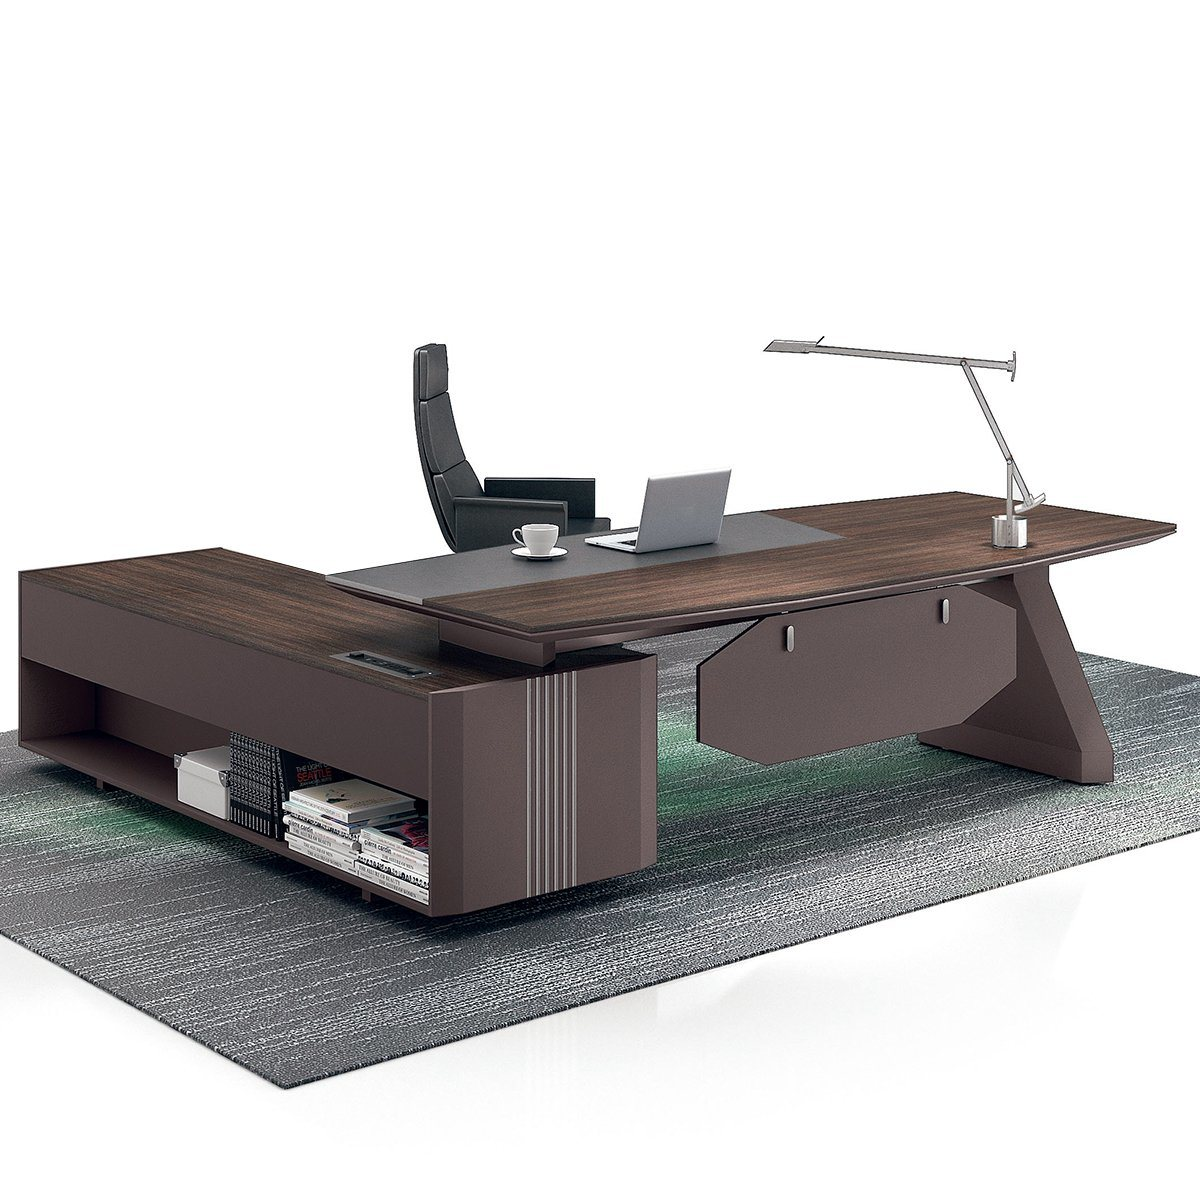 Image of: China Modern L Shaped Hdf Executive Manager Furniture Office Desk China Furniture Office Desk Executive Manager Desk